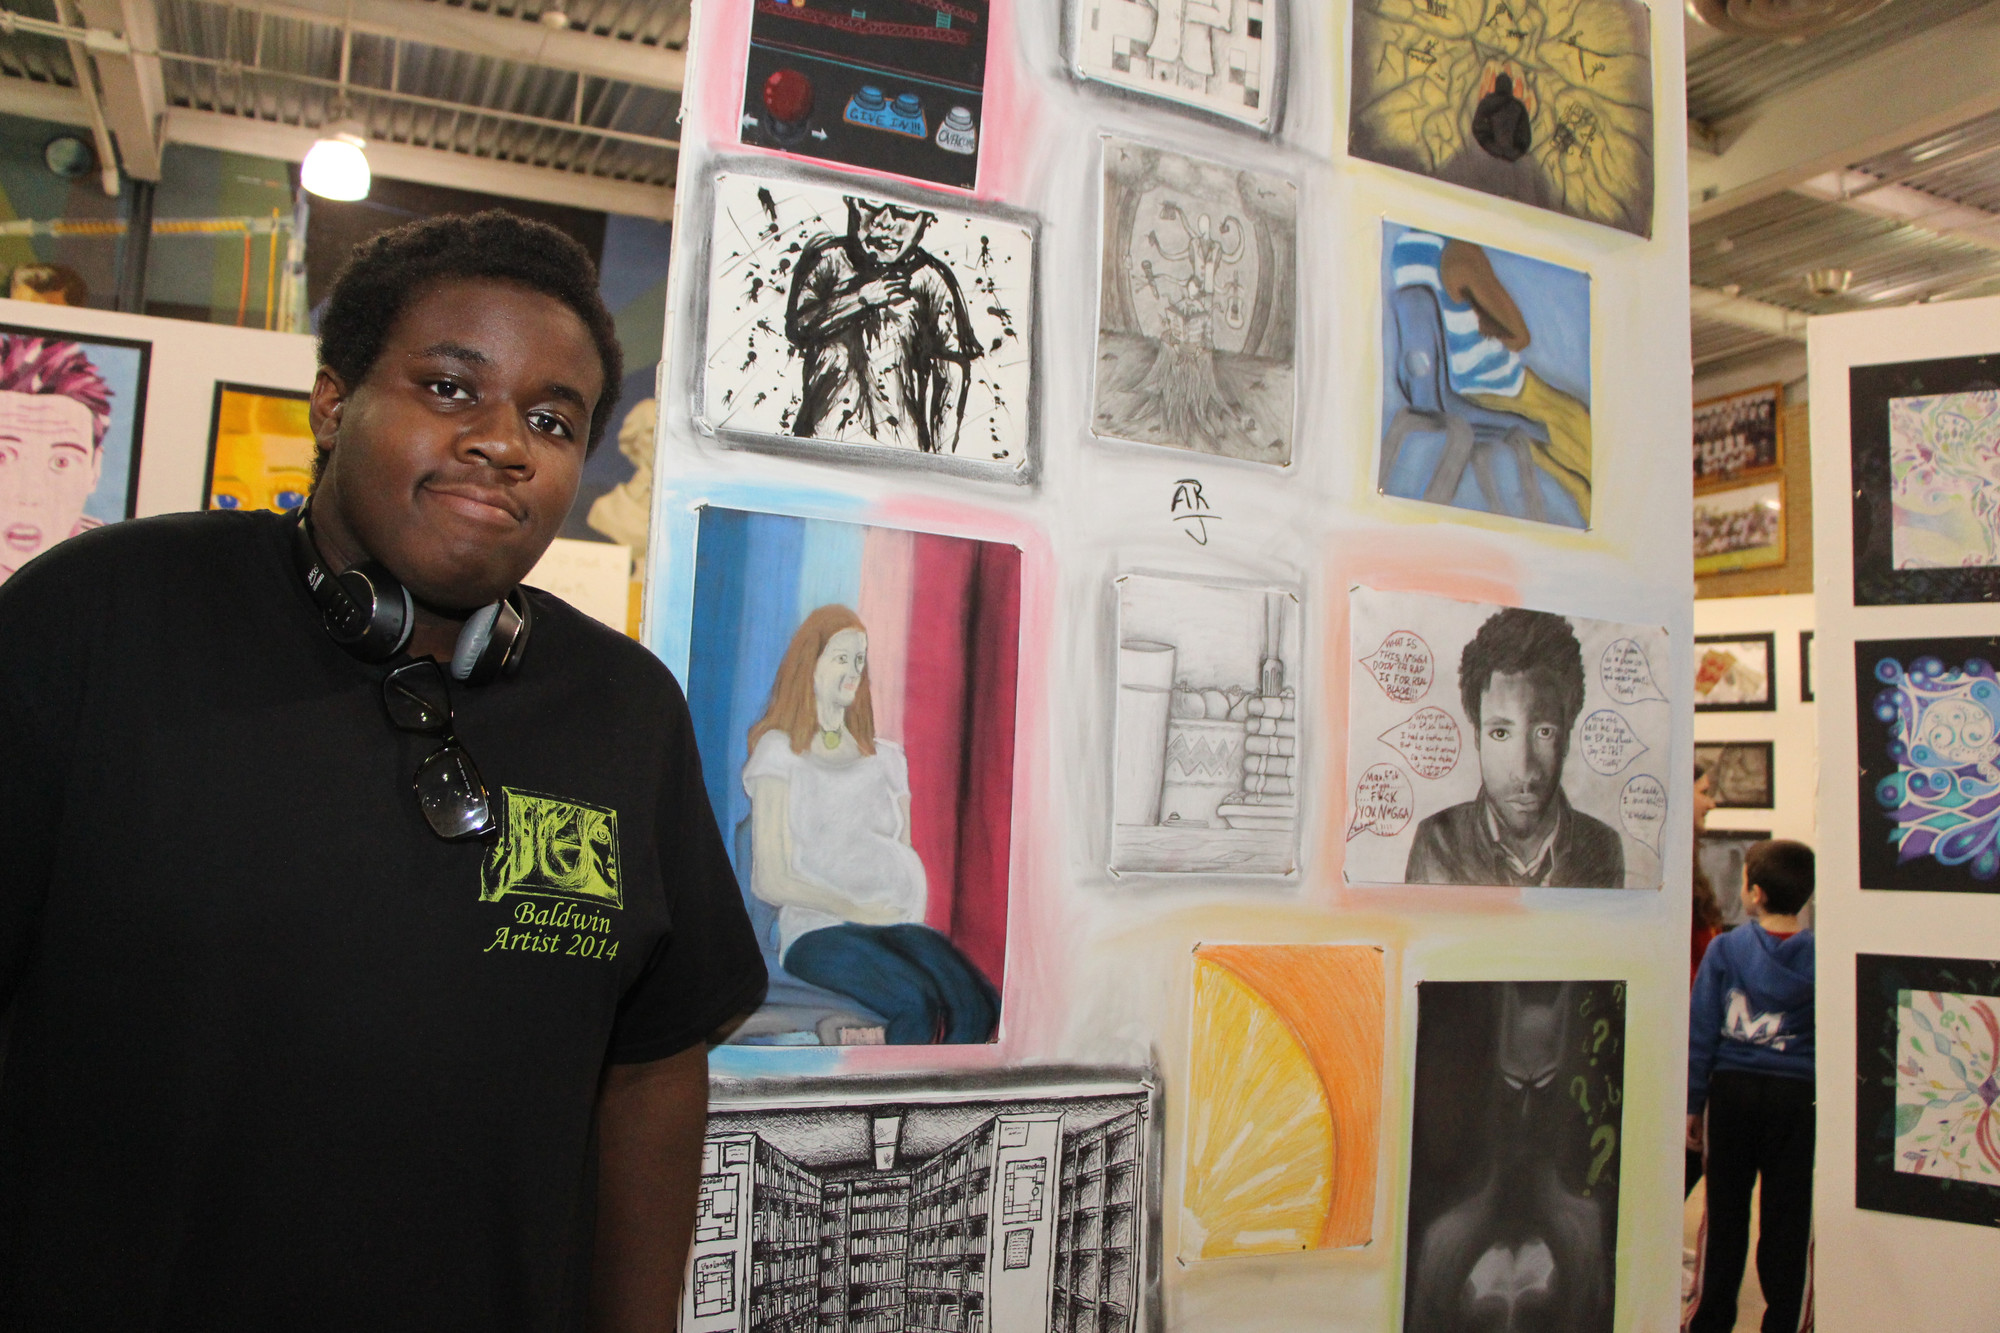 Baldwin high School students had many pieces of their artwork on their own display, including senior Avery Reid, during the school's ninth annual Evening Art Exhibition on April 29.